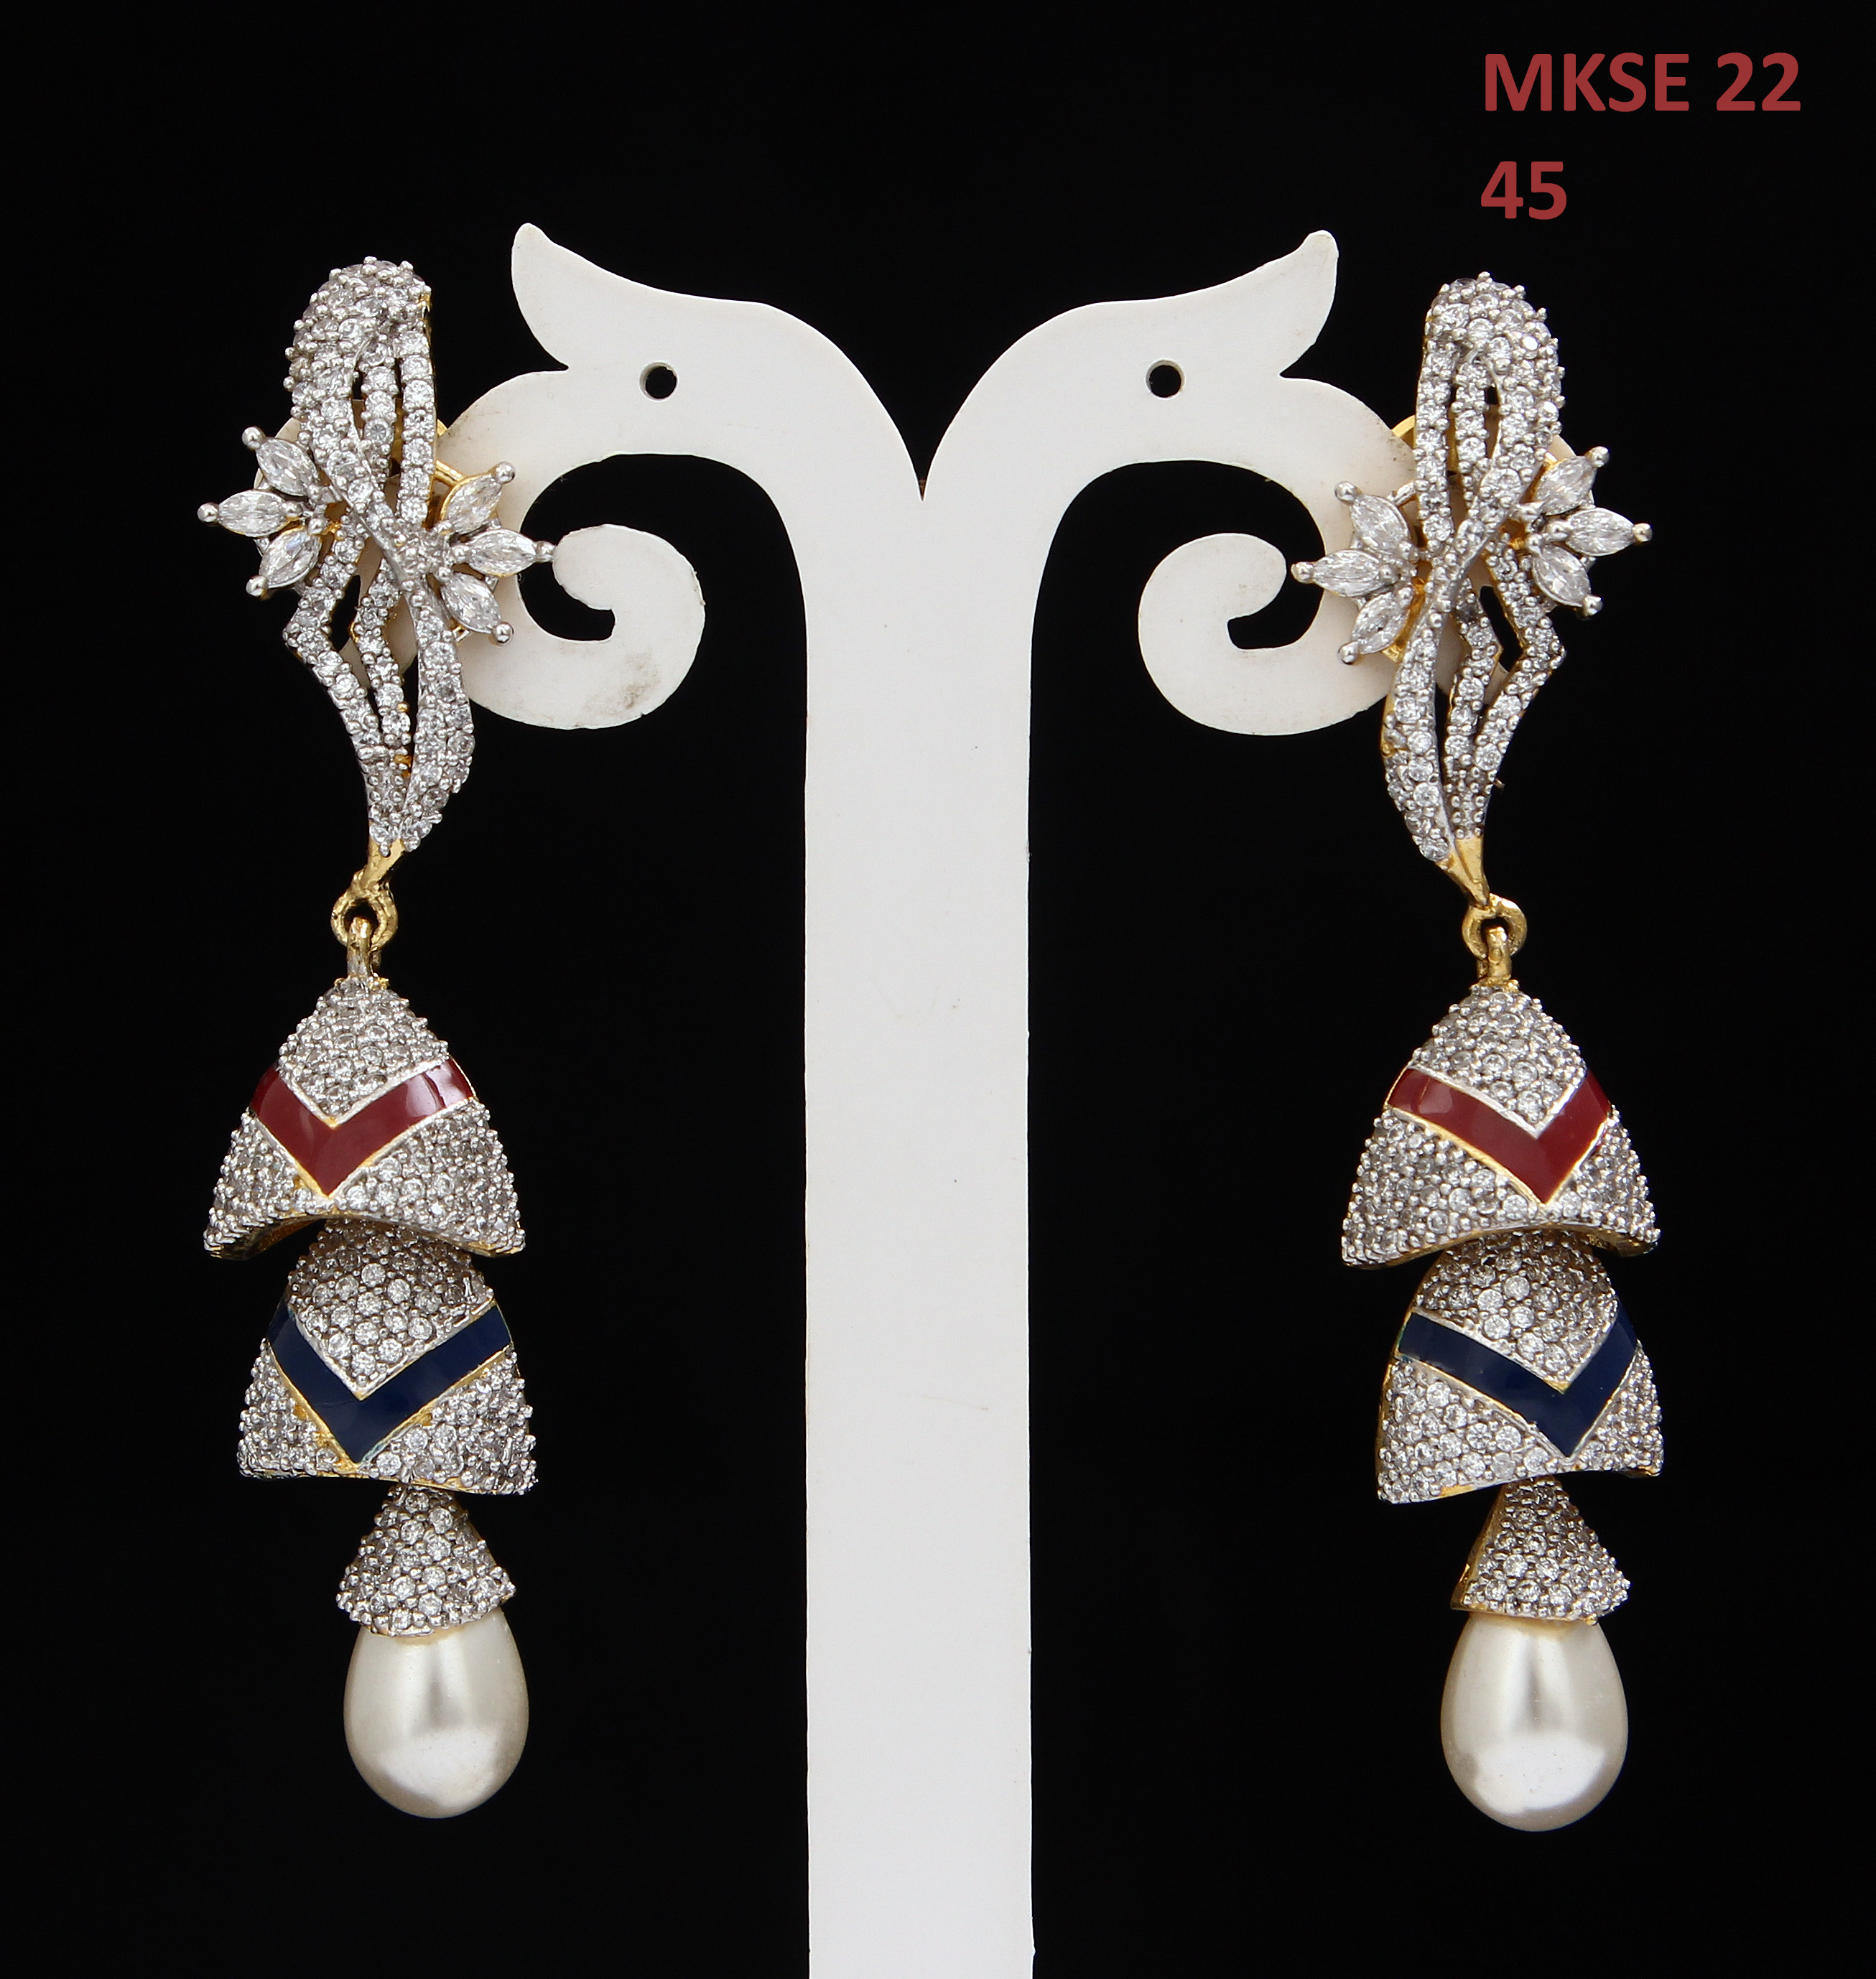 55Carat | Beautiful Dangle Earrings For Girls White Pearl,Cubic Zircon Stones Gold Plated Cluster Long Stud Teardrop Earings For Women Indian Traditional Design Jewelry